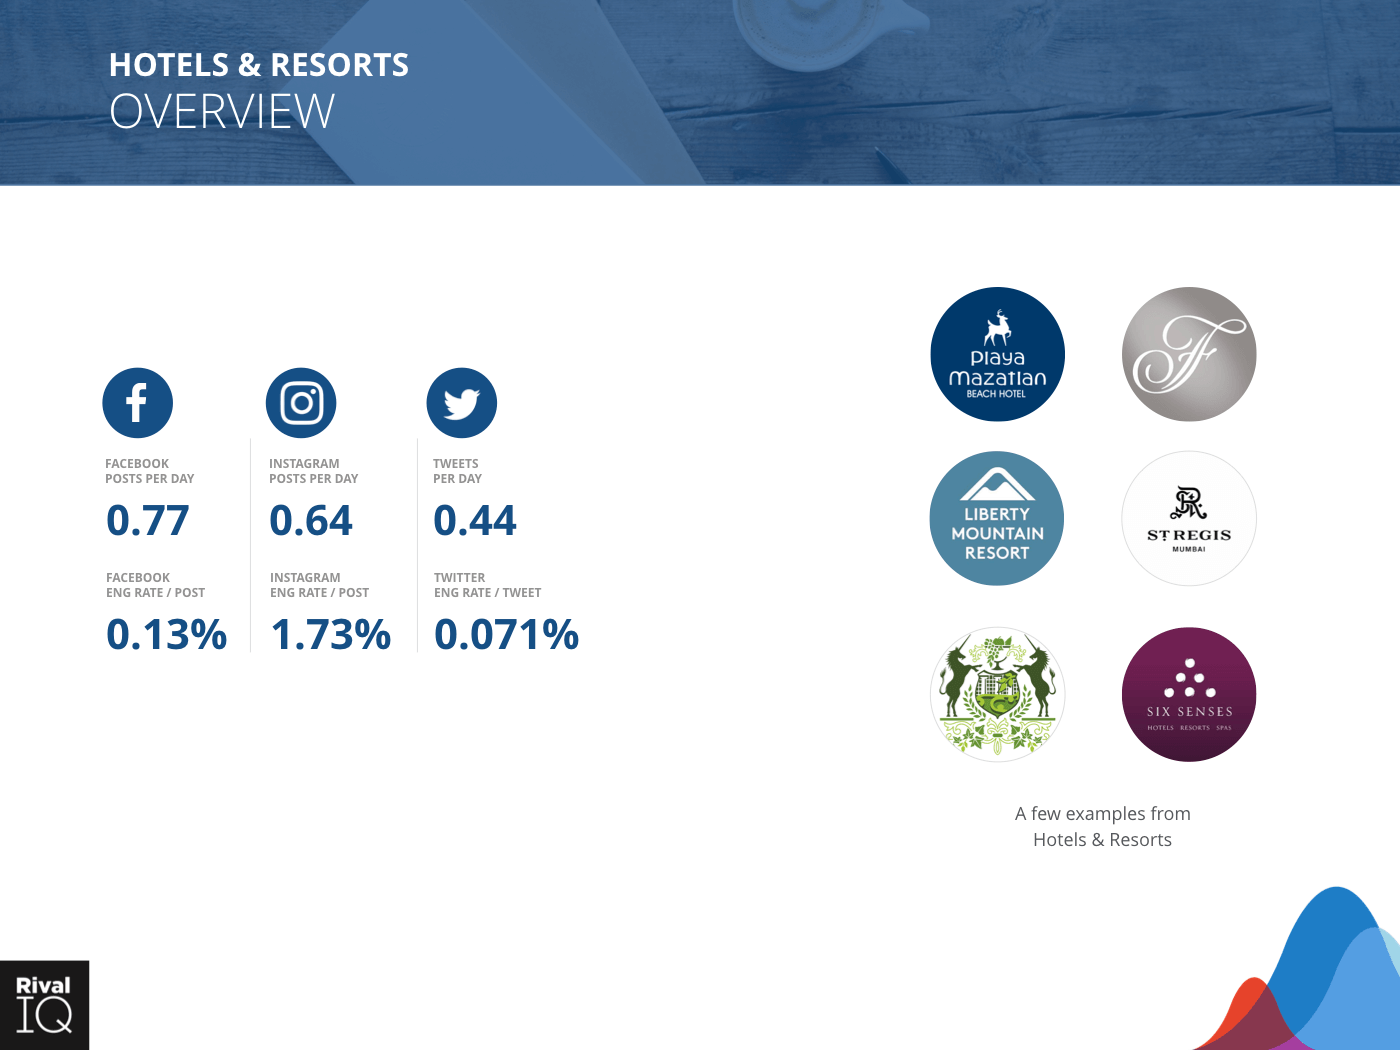 RivalIQ Social Media Benchmarks for Hotels & Resorts